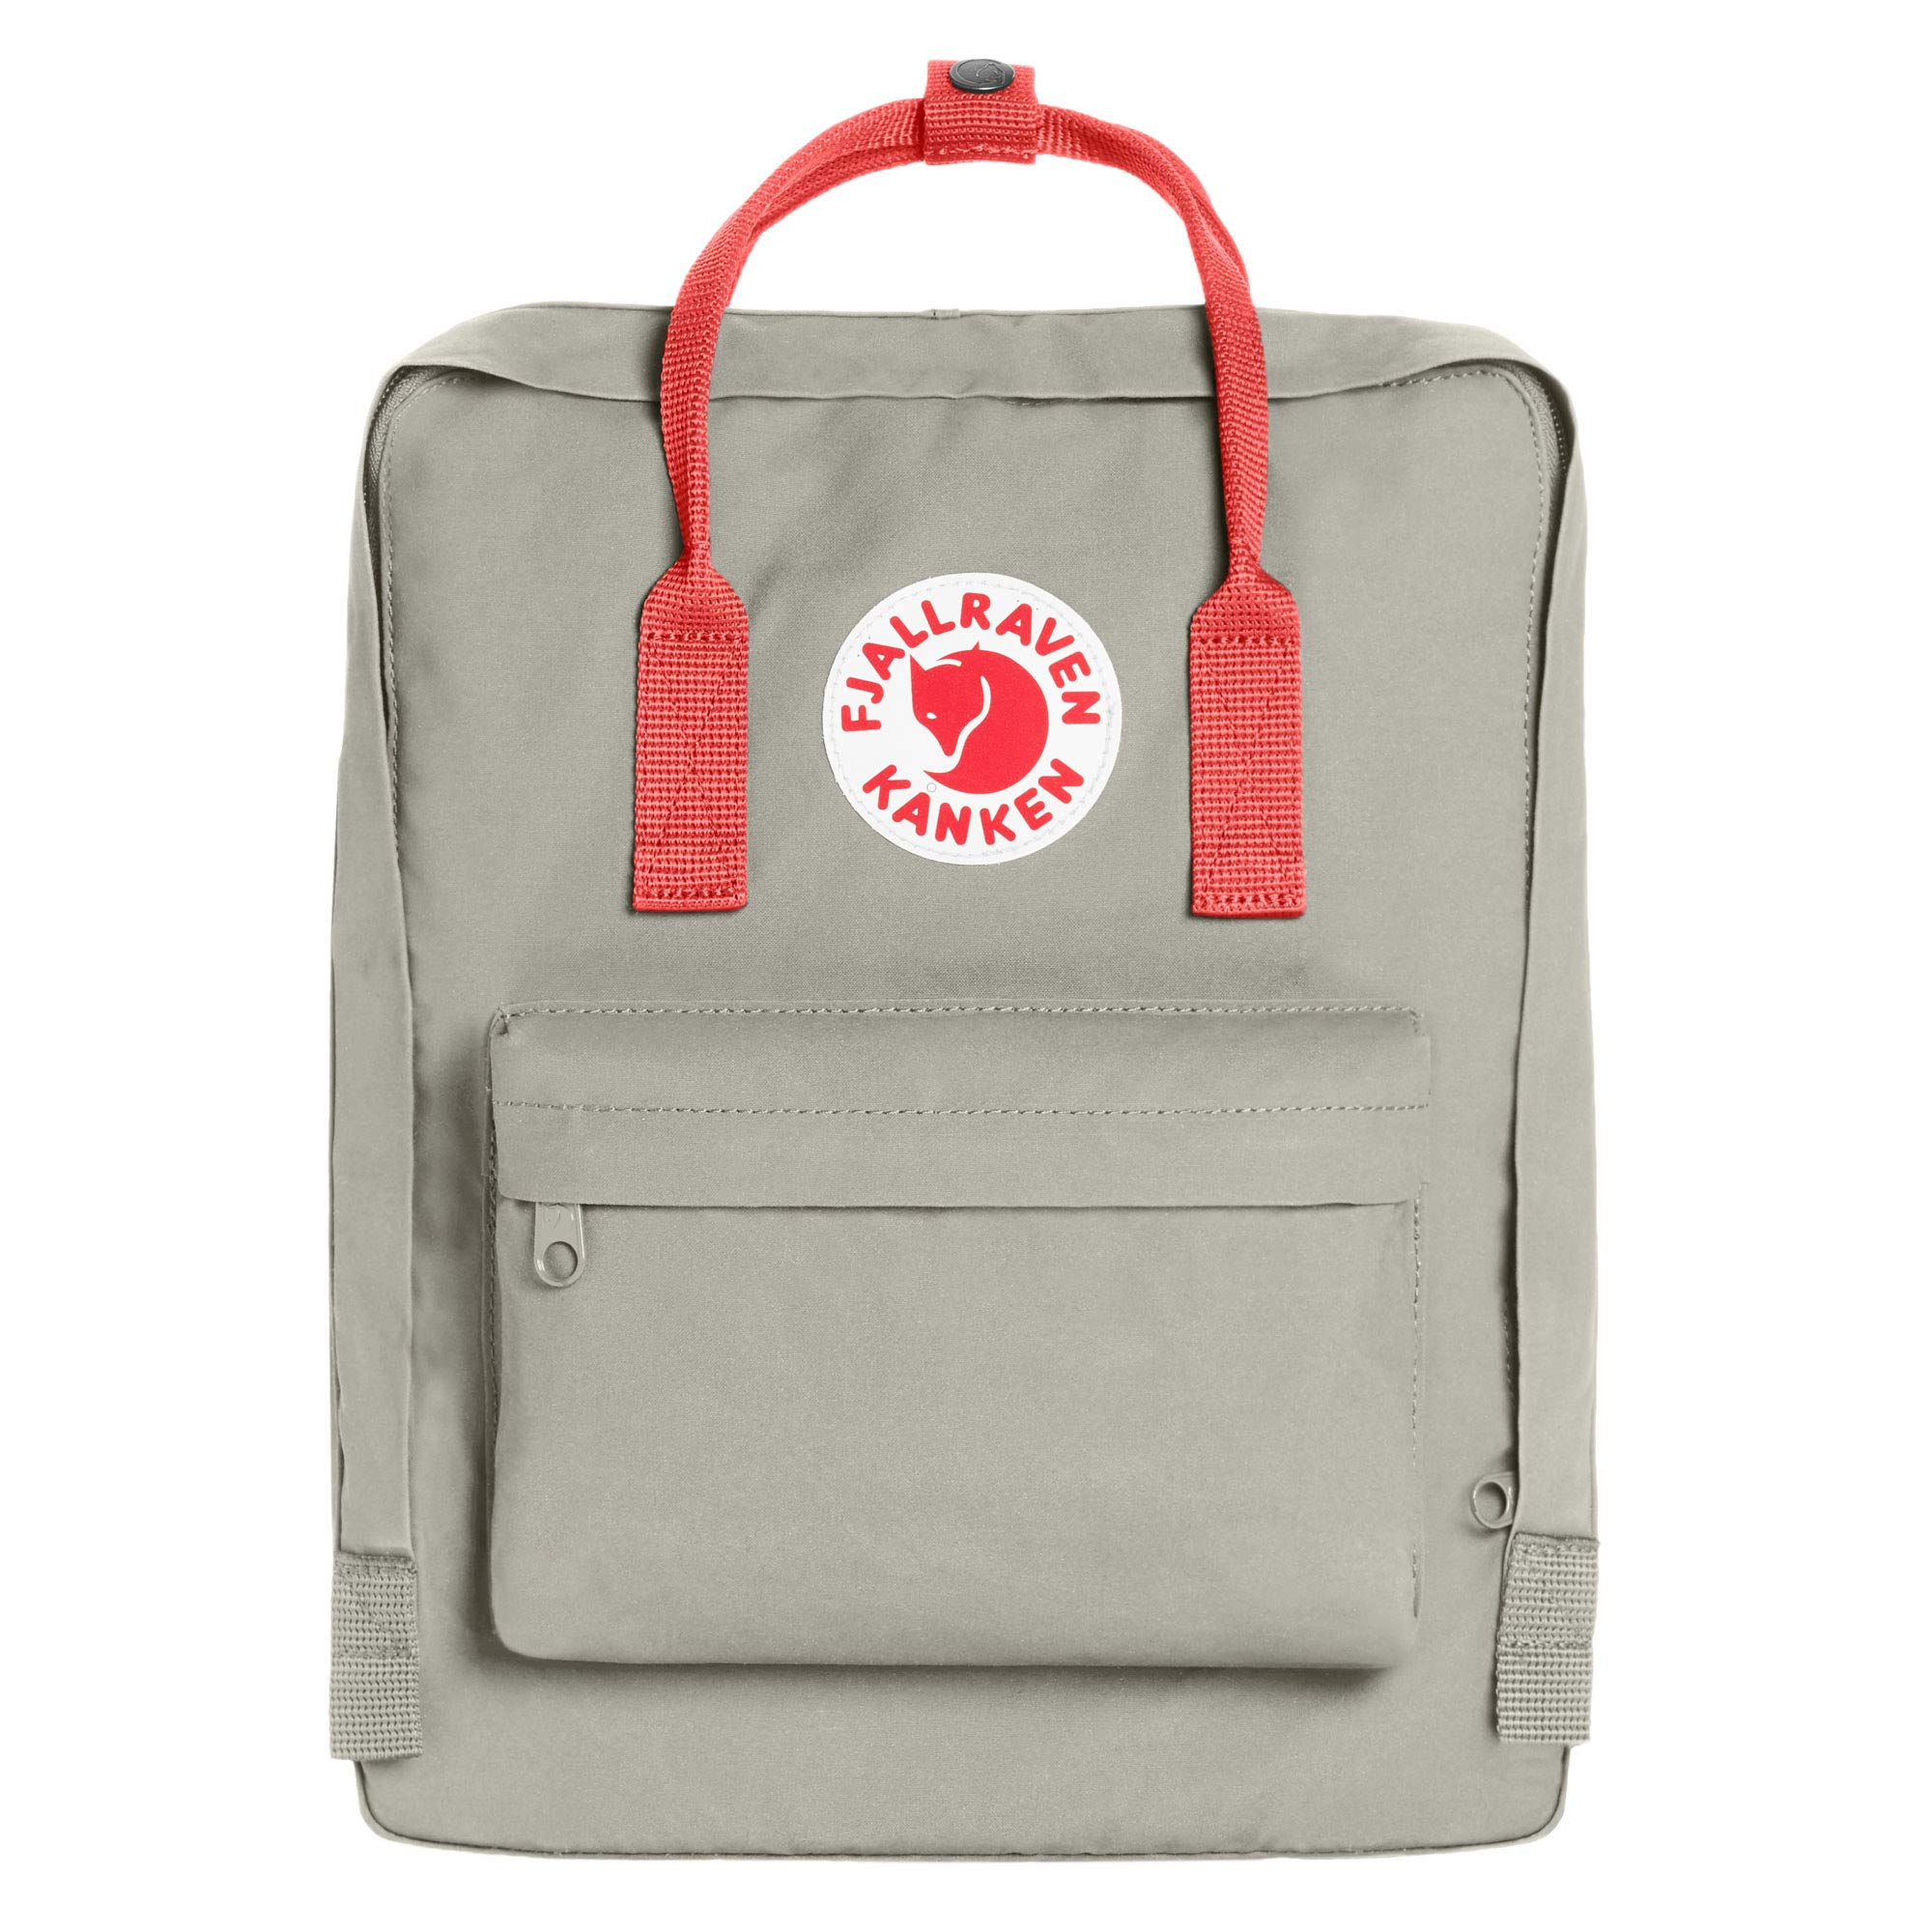 Fjallraven - Kanken Classic Backpack for Everyday, Limited Edition Fog/Peach Pink